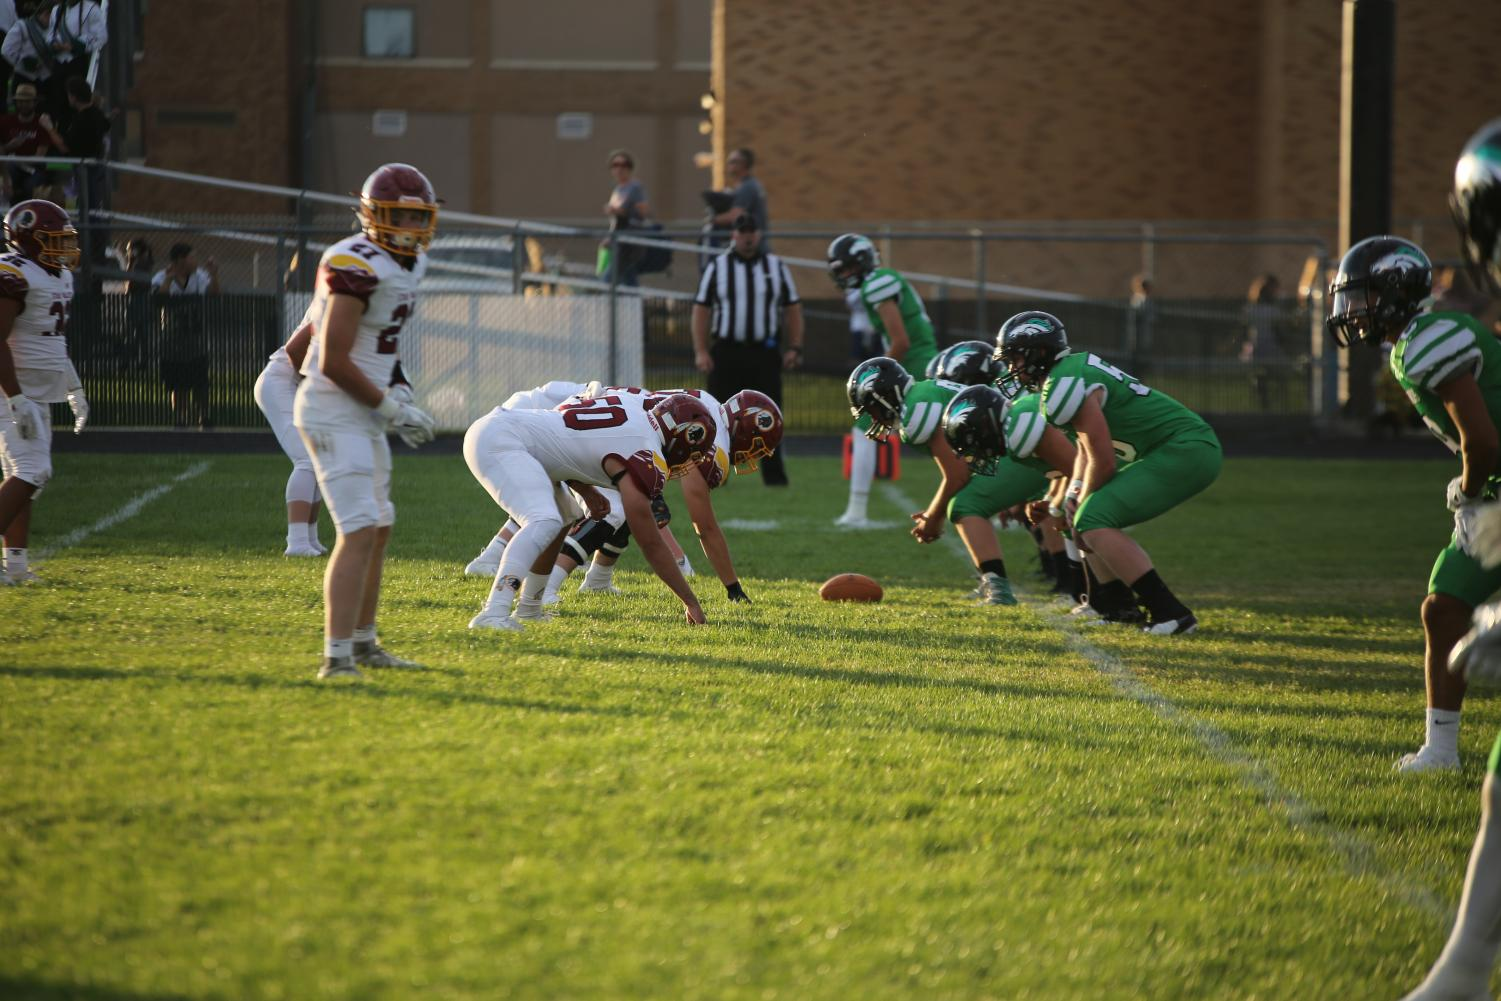 THE BOYS IN THE TRENCHES: Linemen don't score many touchdowns or catch many passes, but they make it possible for others to do so.